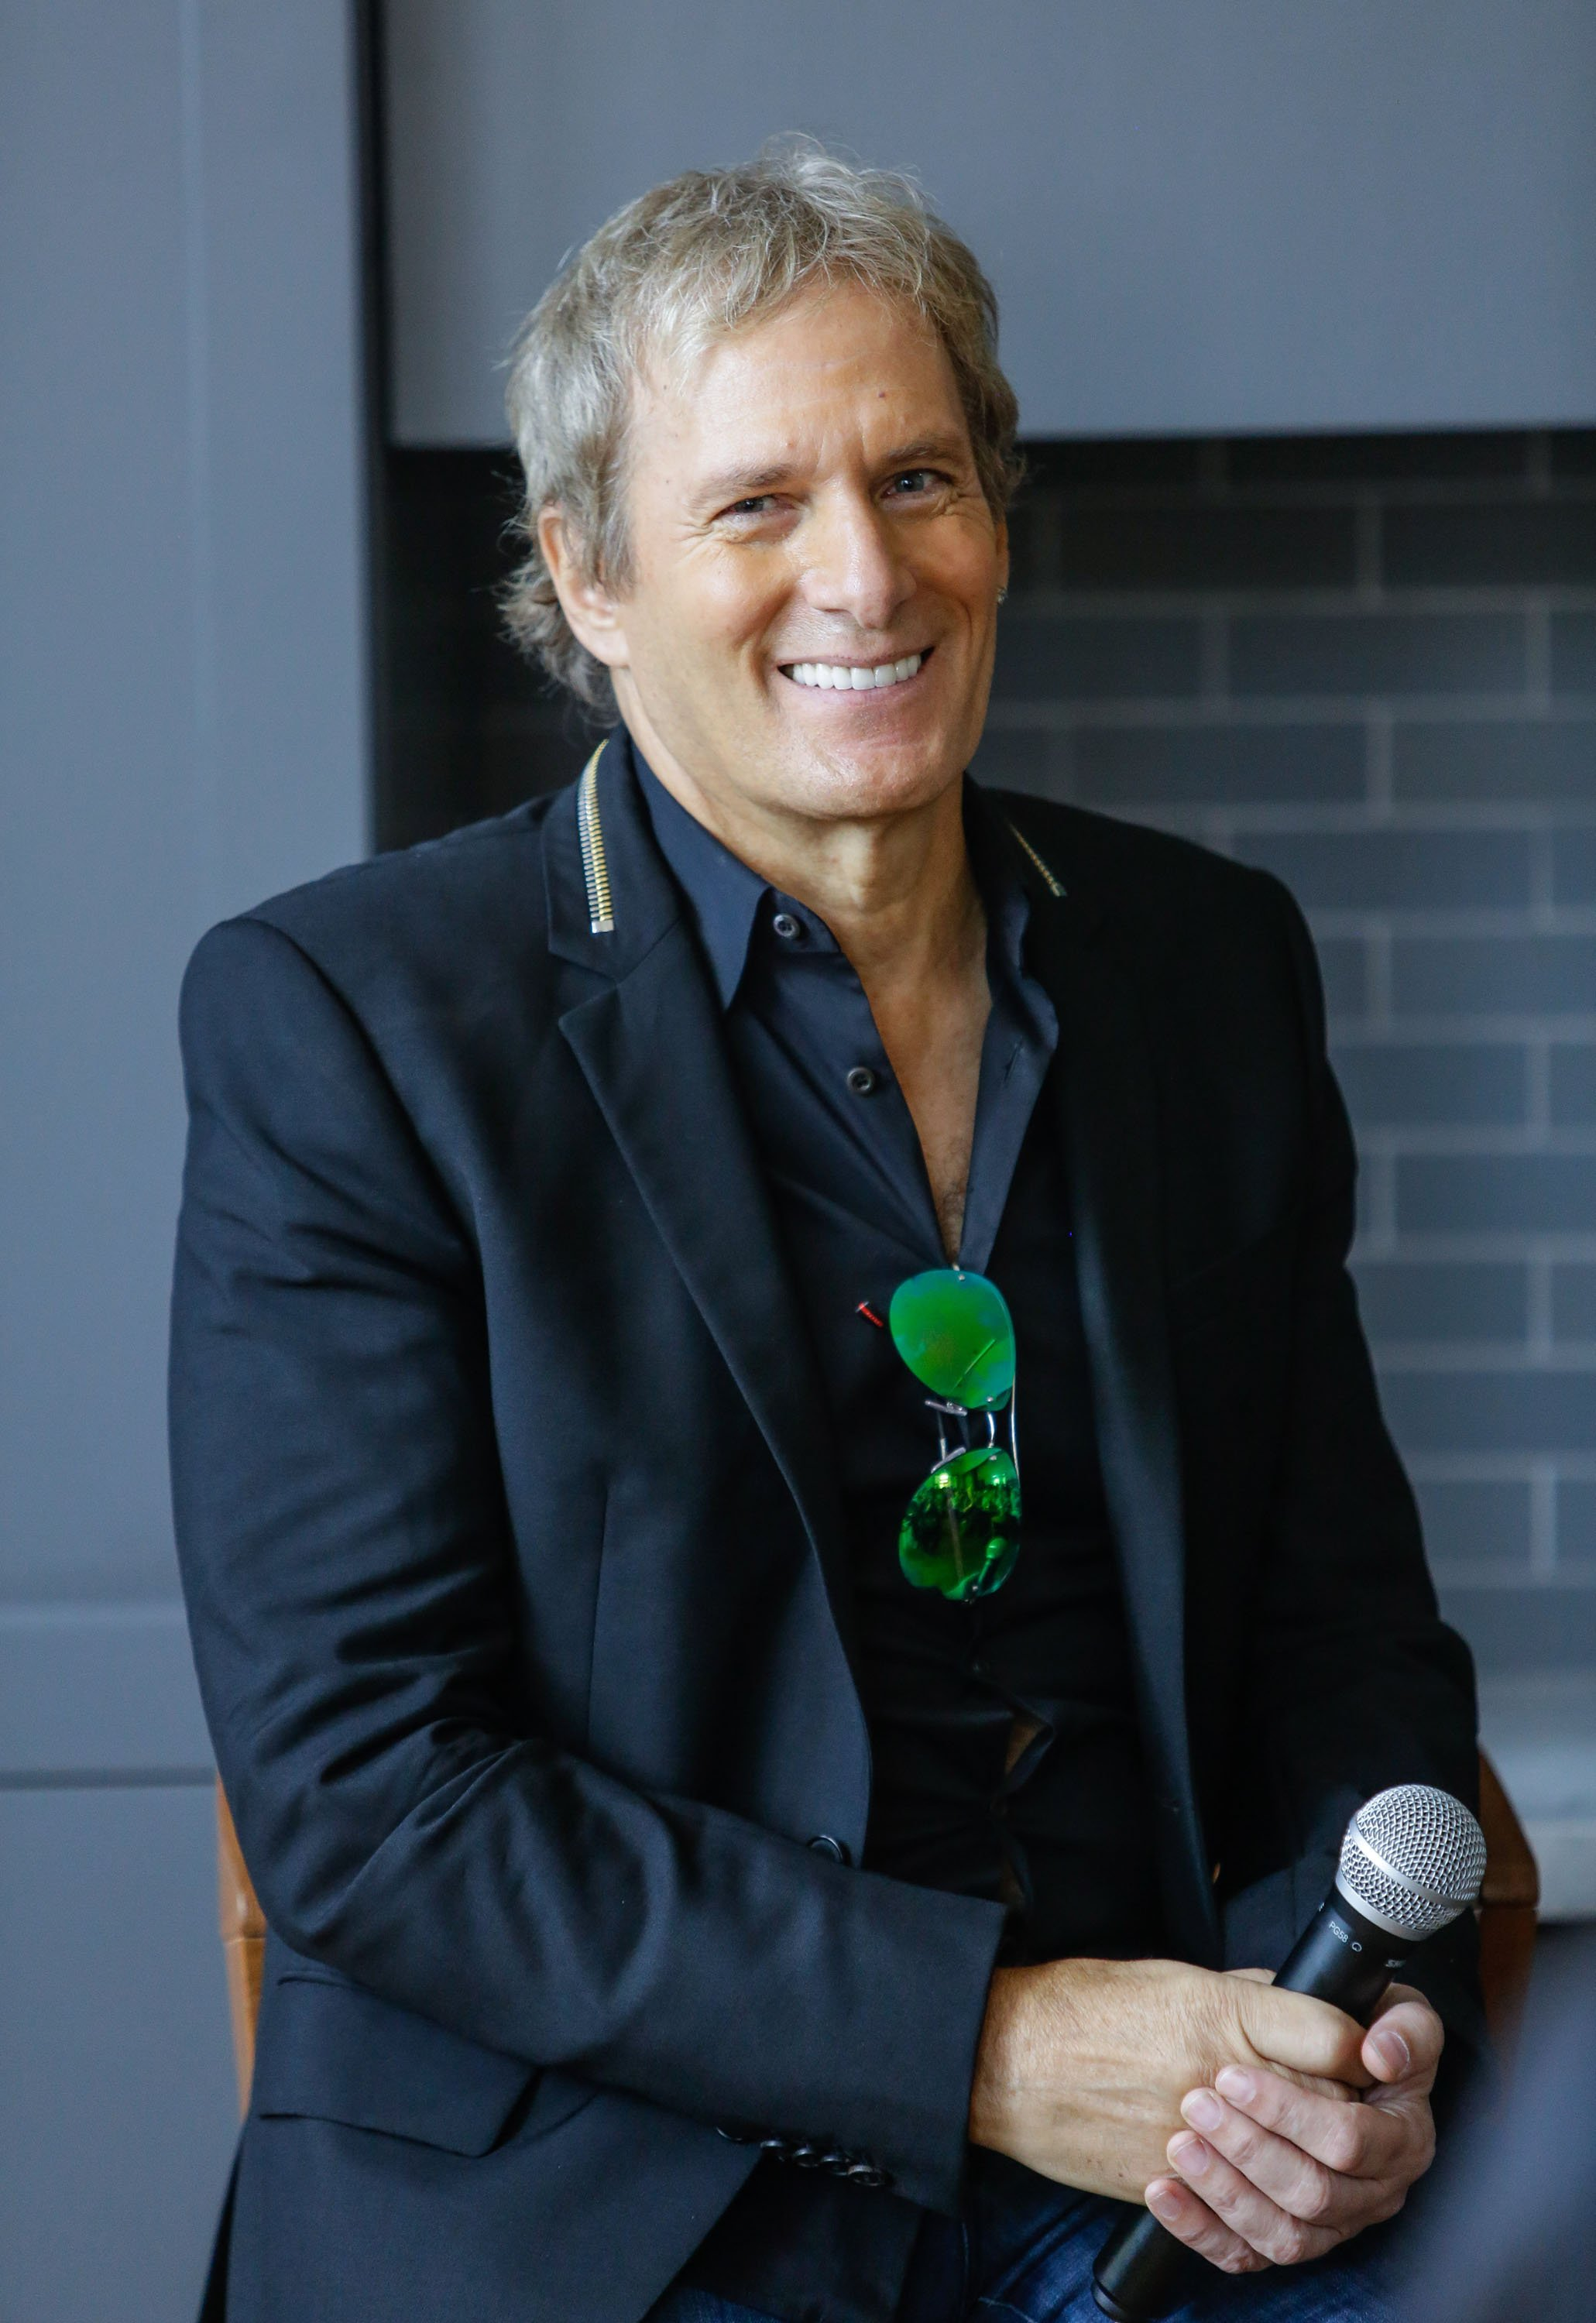 Image Source: Getty Images/ Michael Bolton in one of his performances